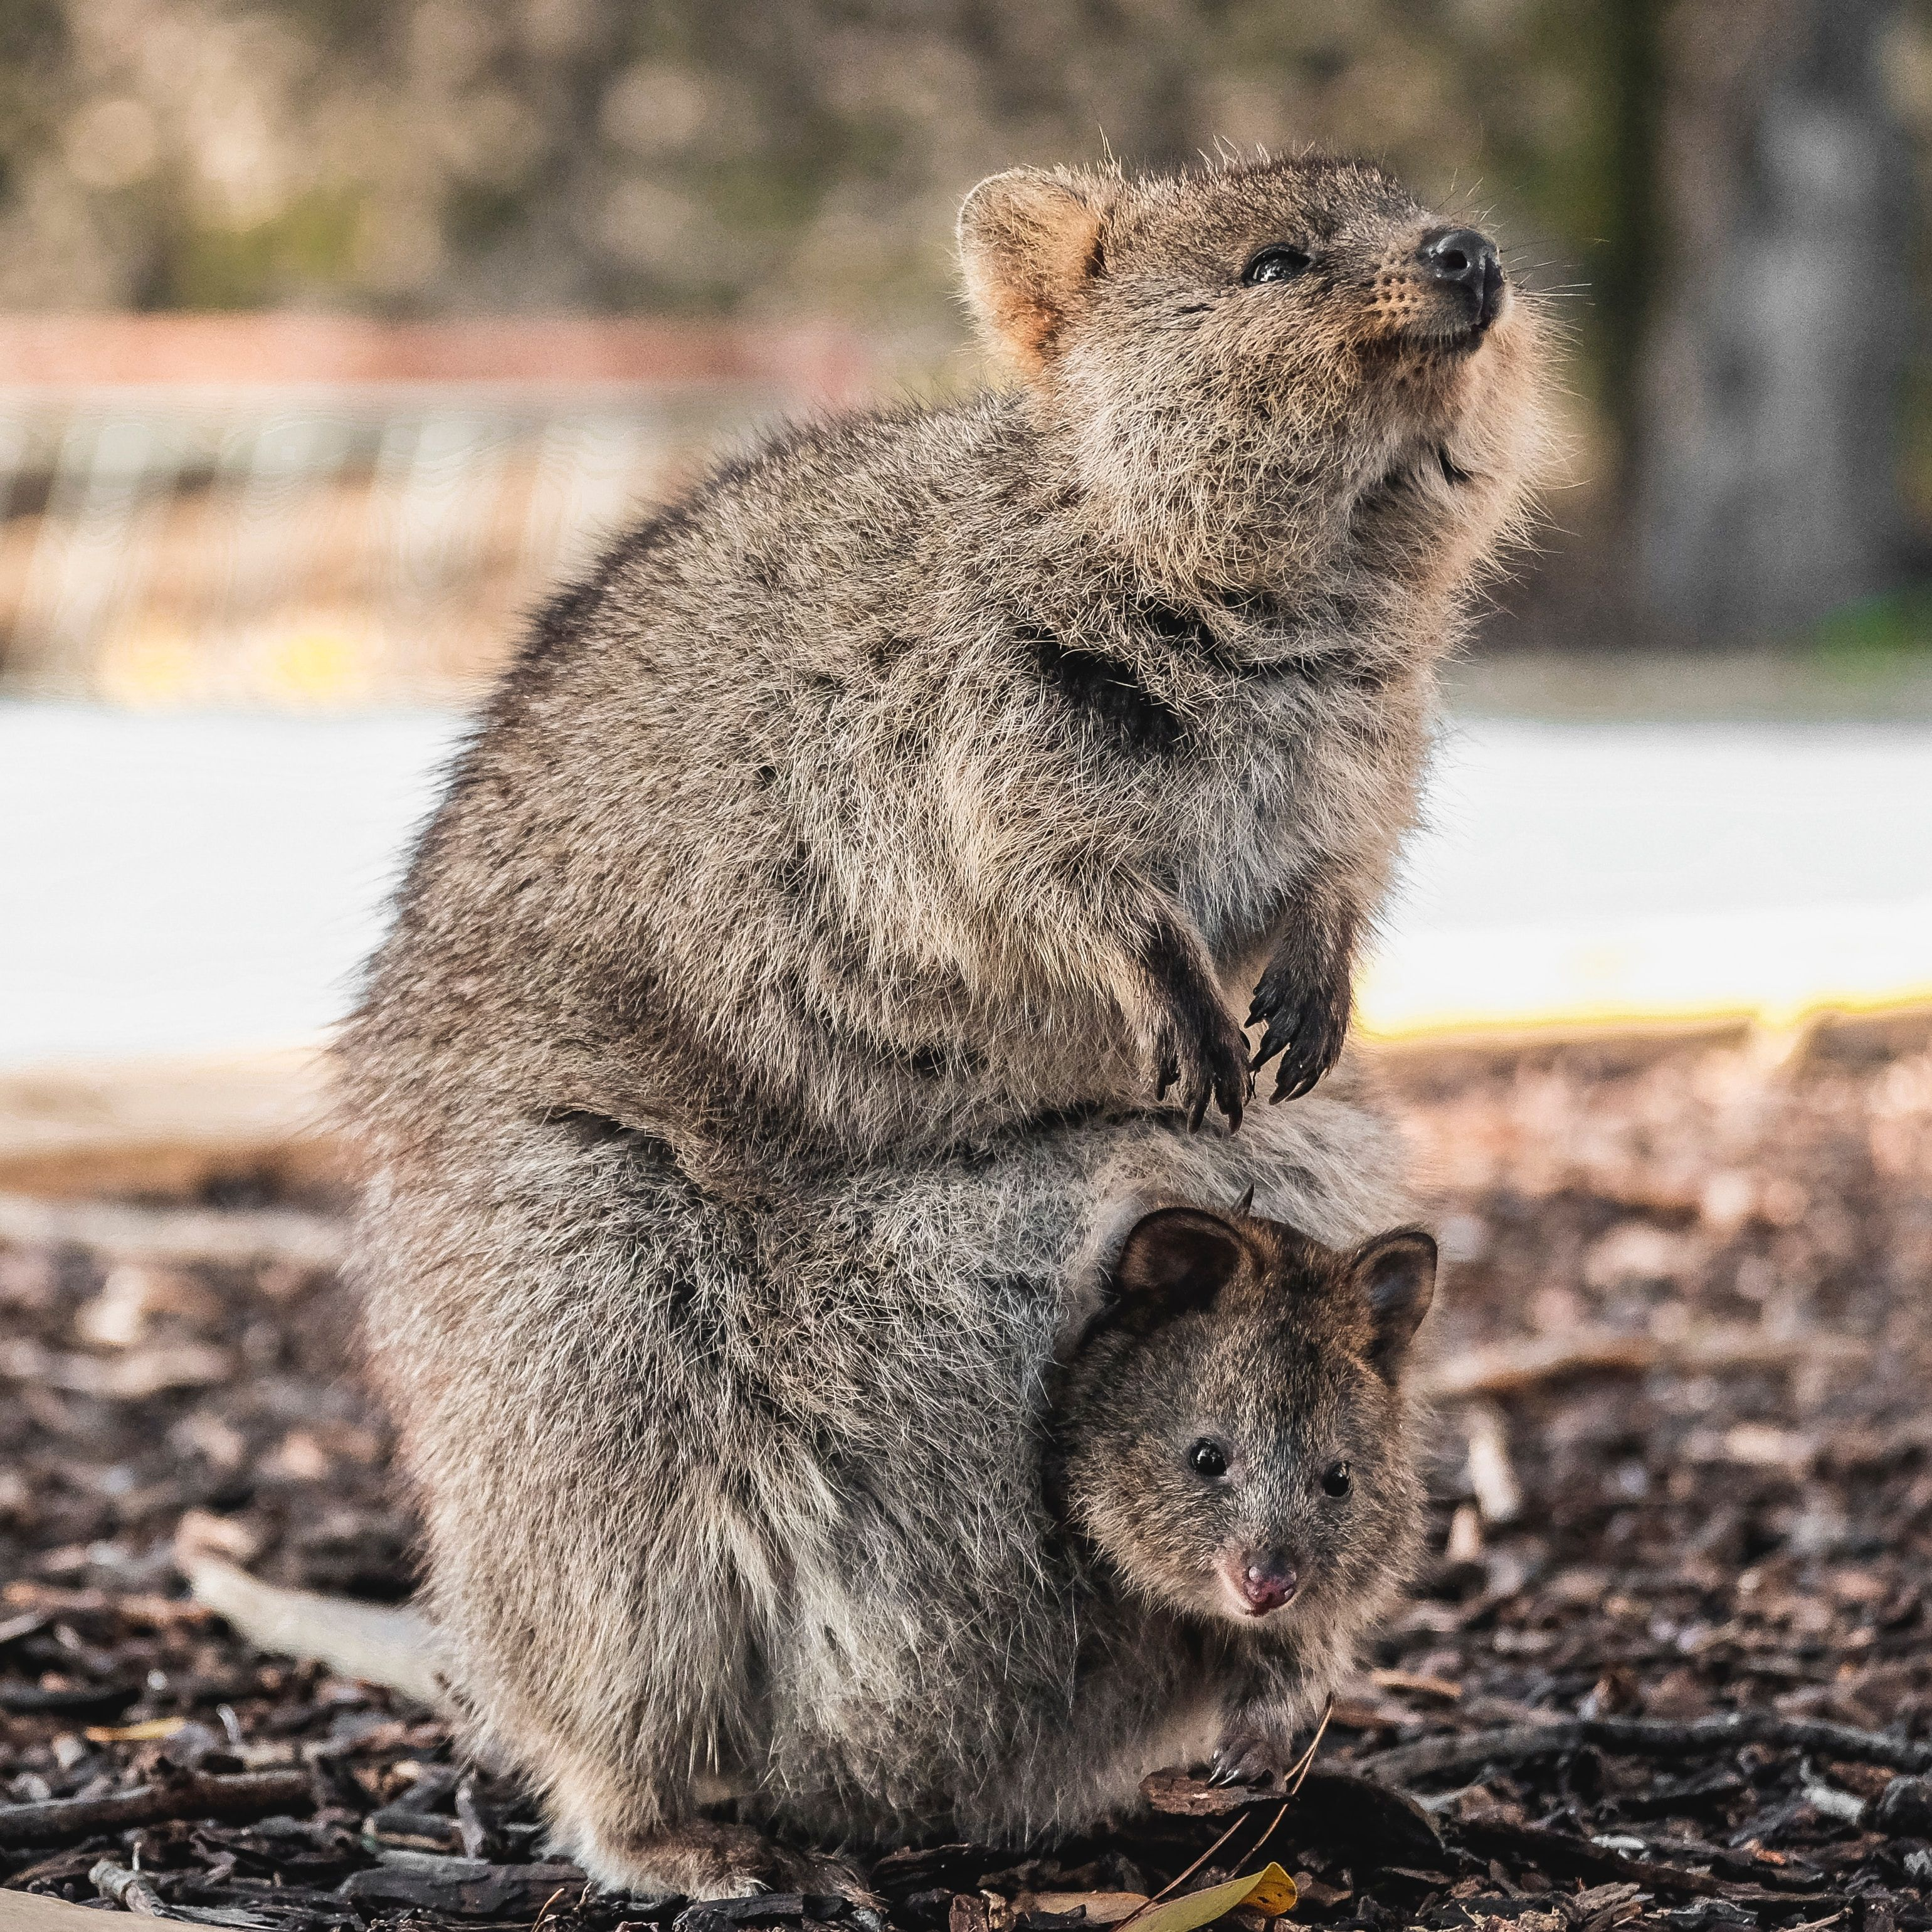 Quokka are known for their fearlessness and smiles. These